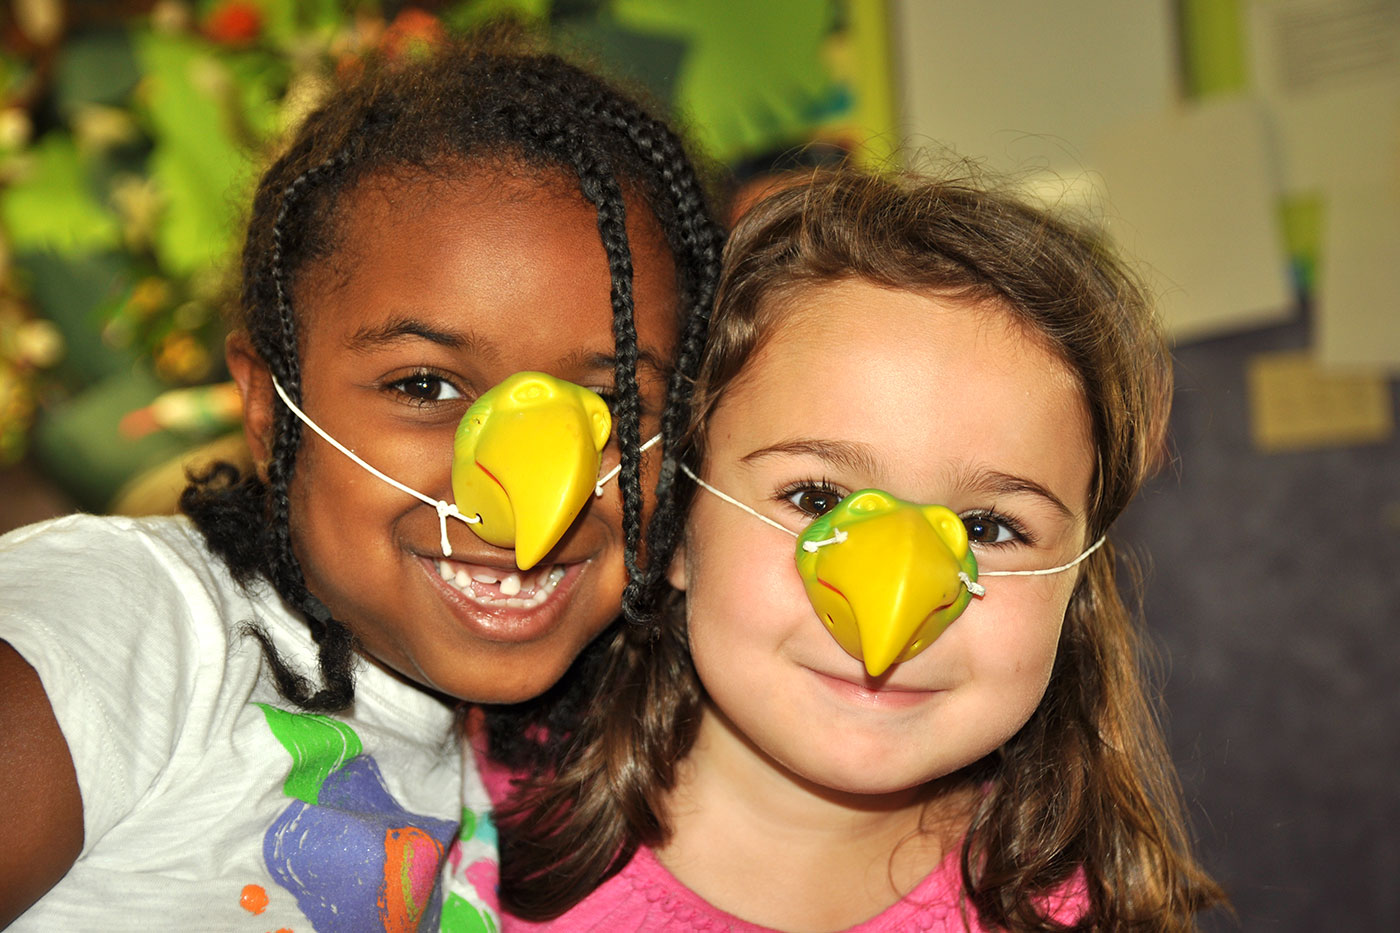 Two young children smiling together while wearing bird beak masks that cover their noses.